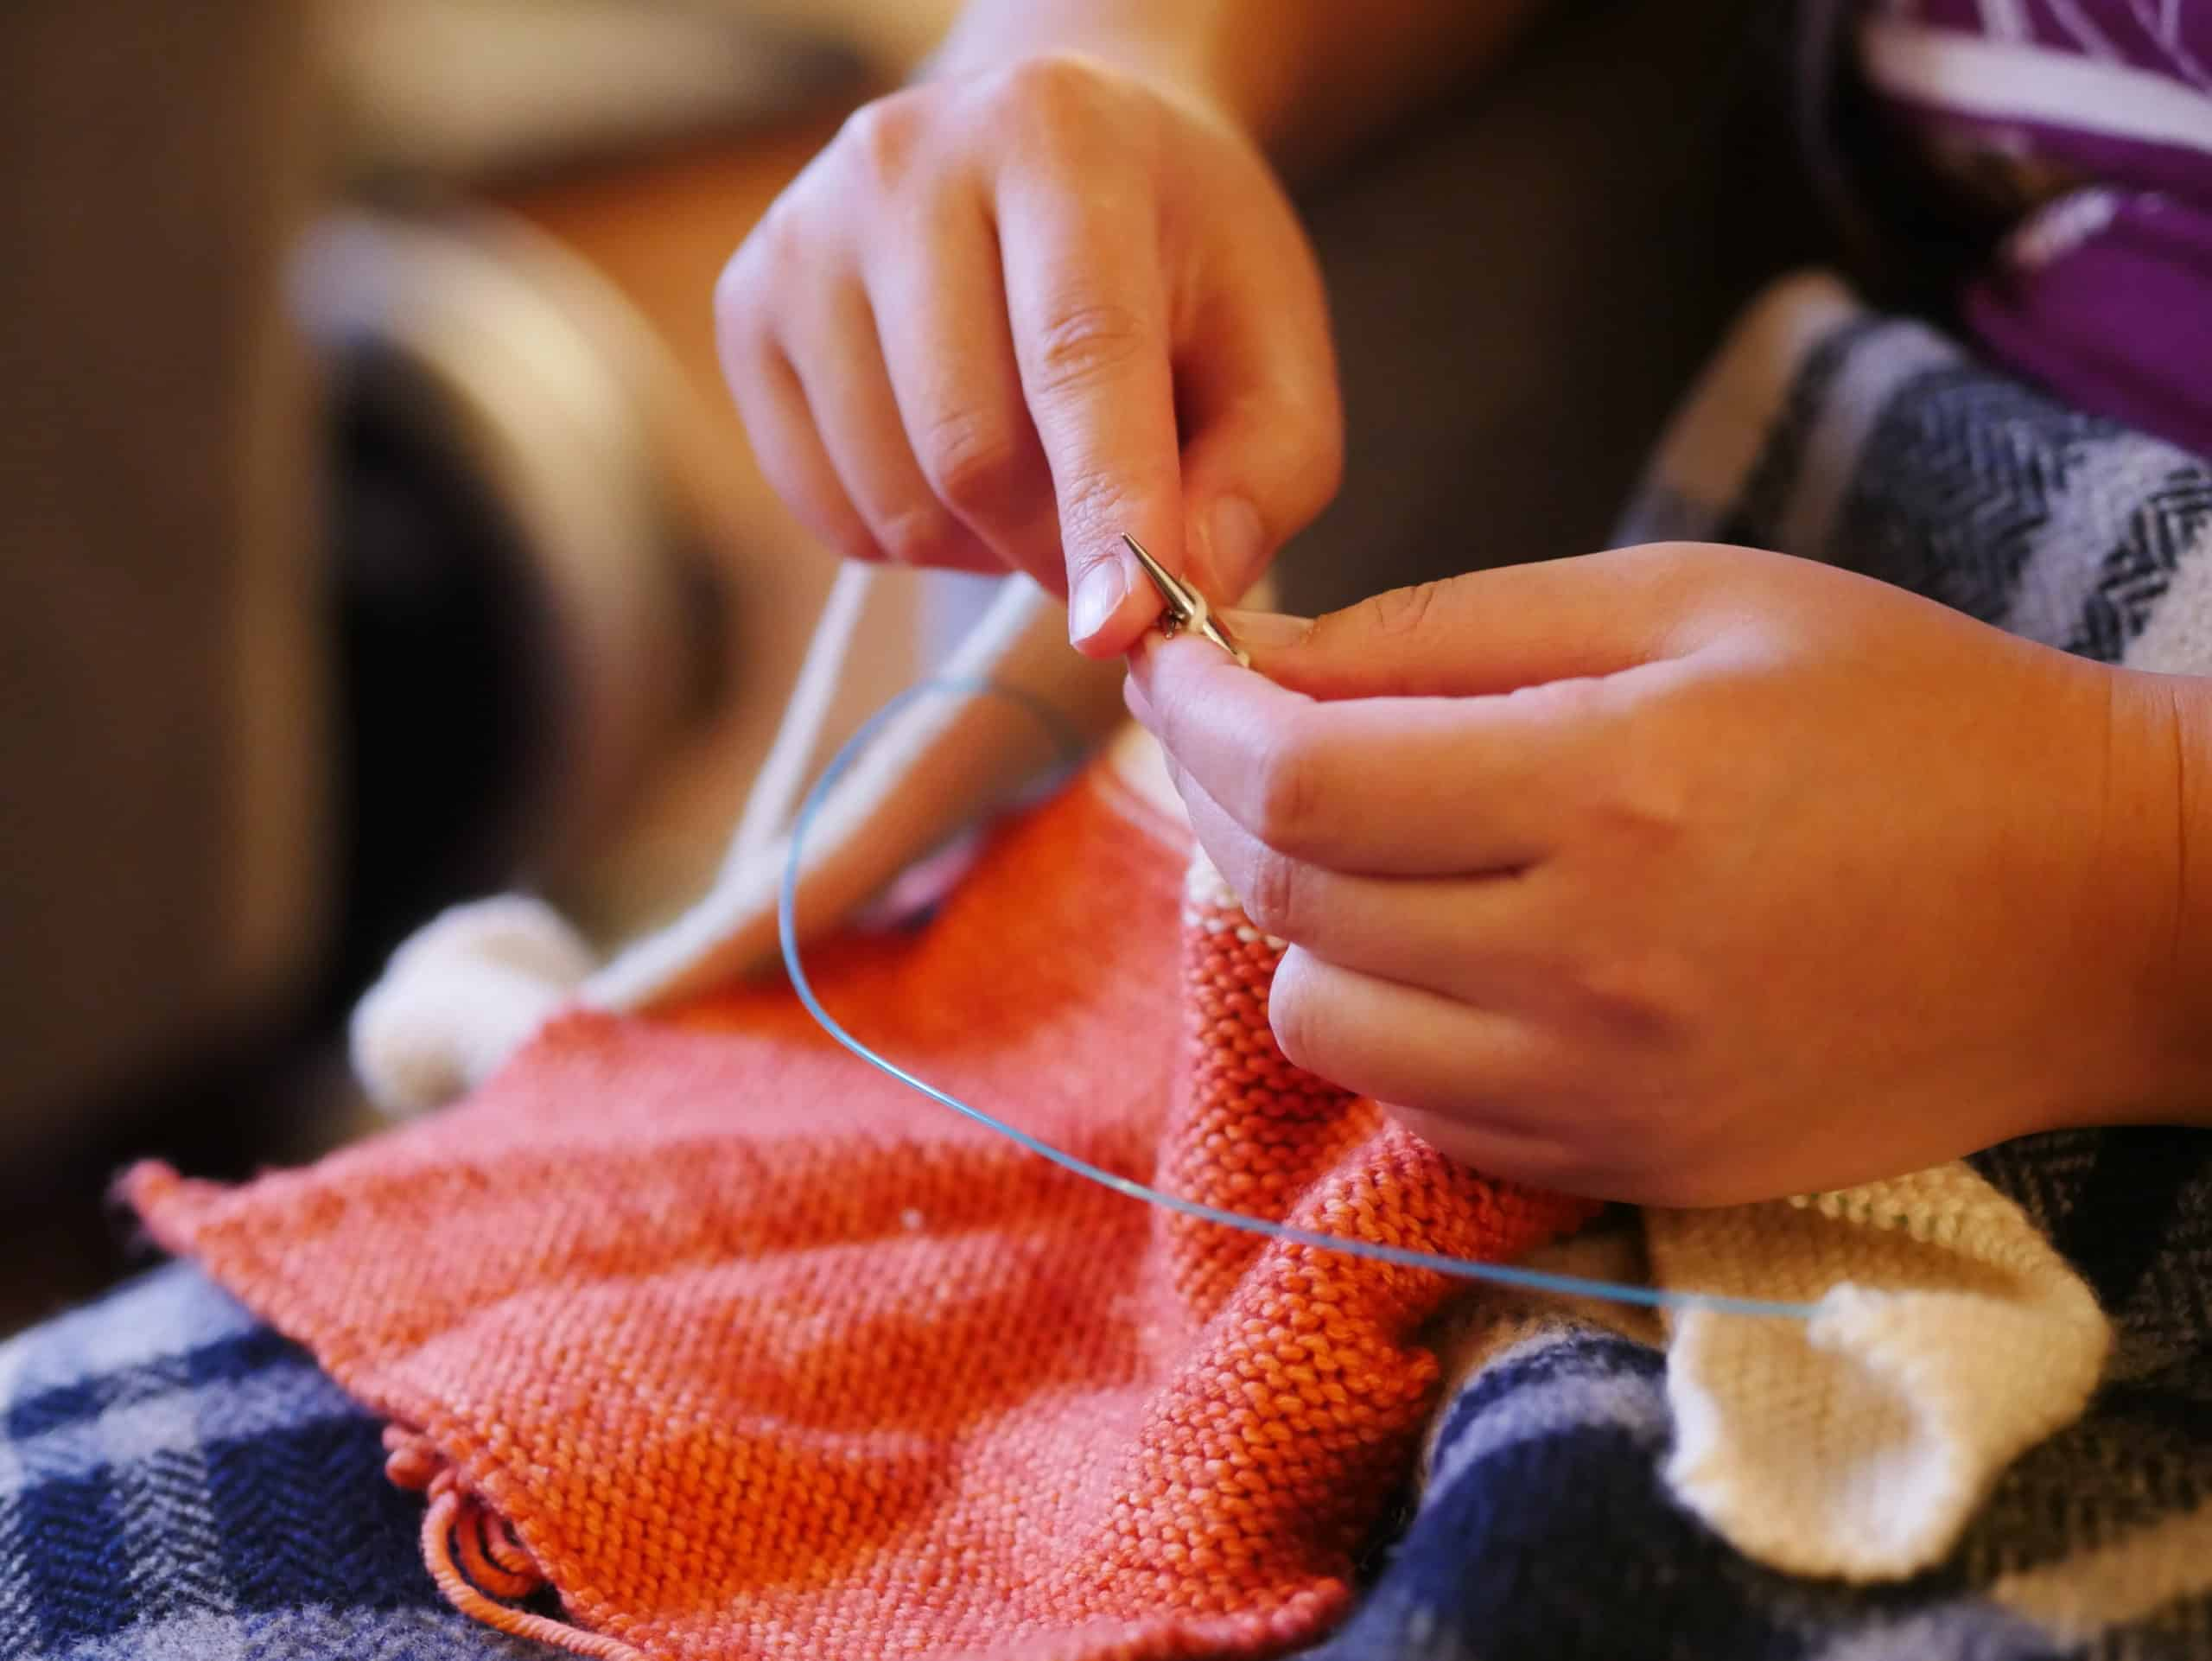 Hands knitting a coral sweater.